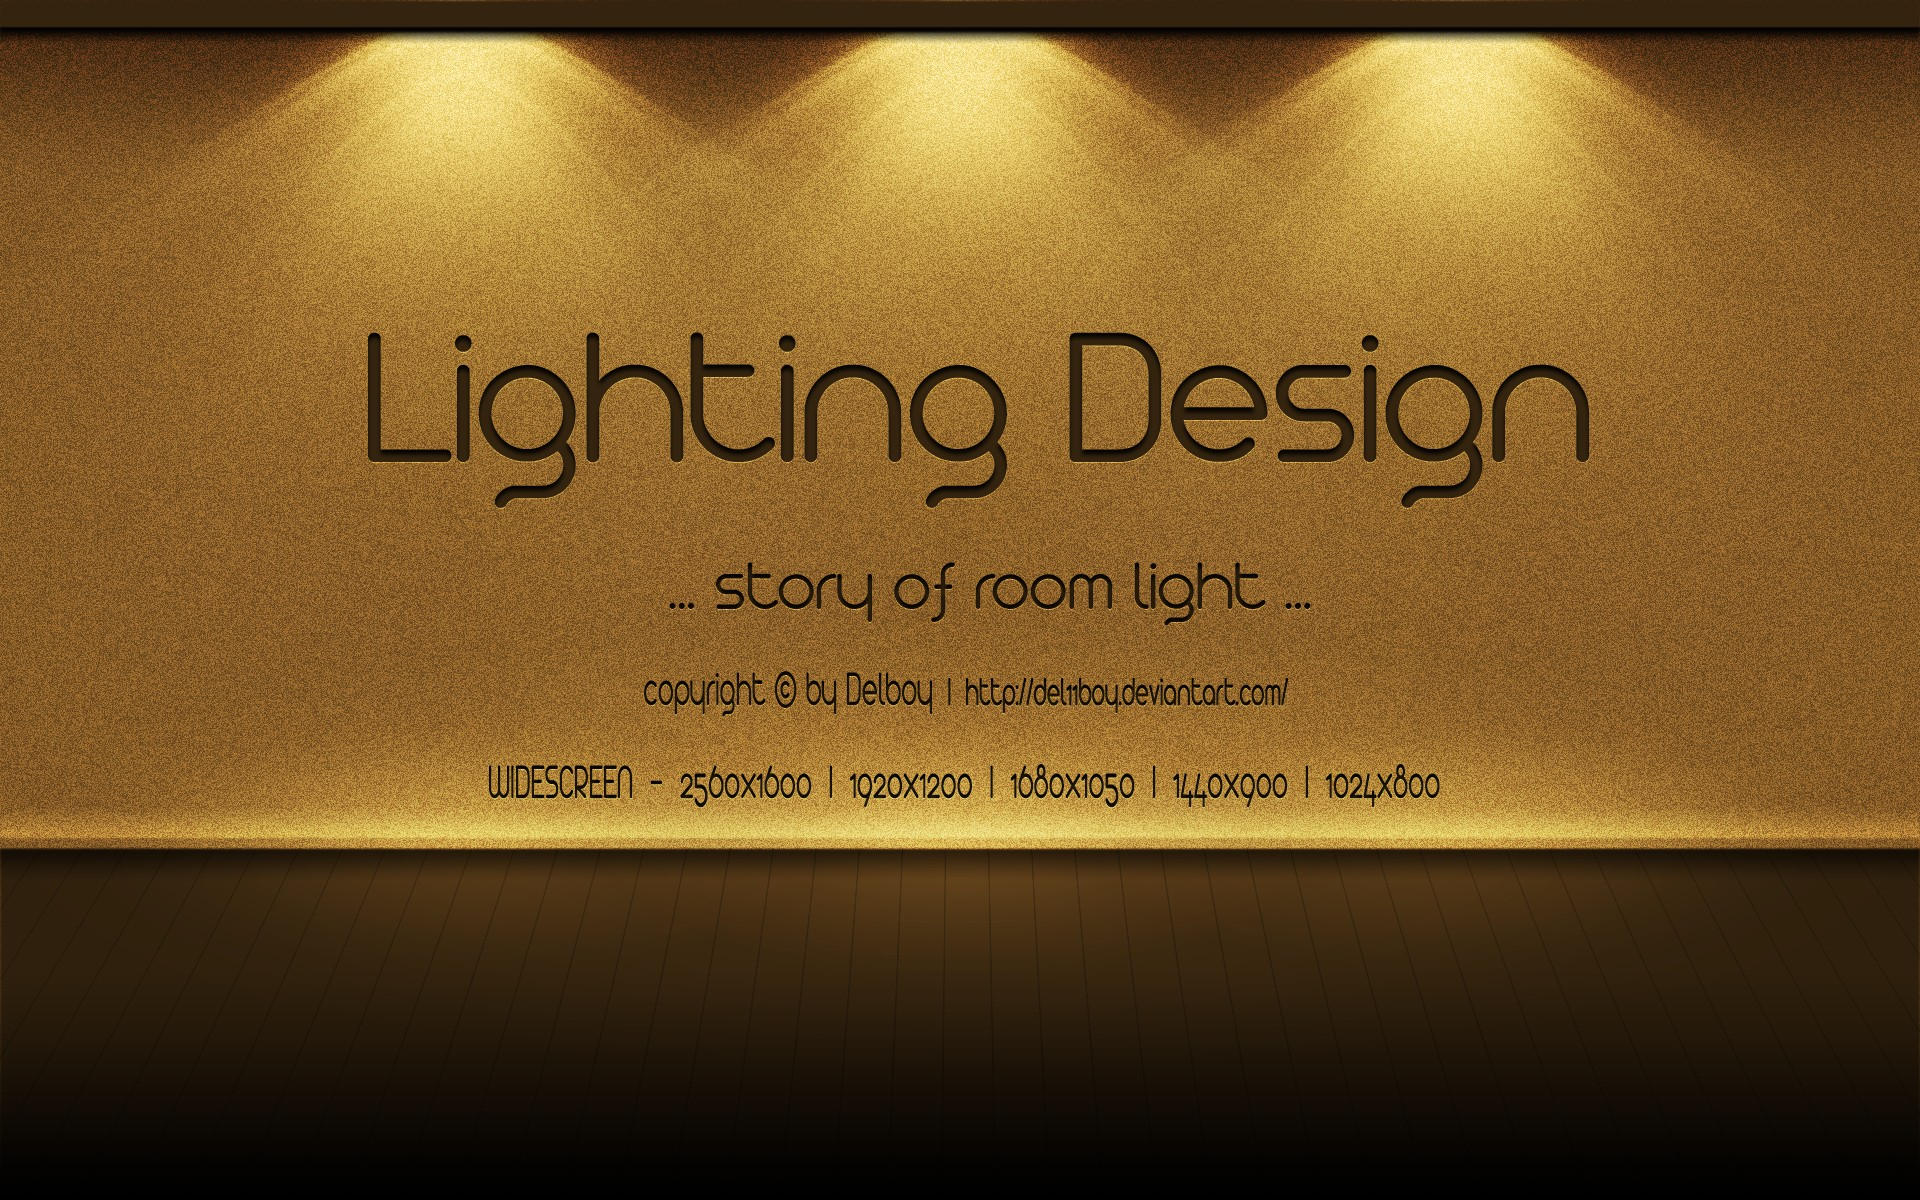 ... story of room light ... by Del11boy